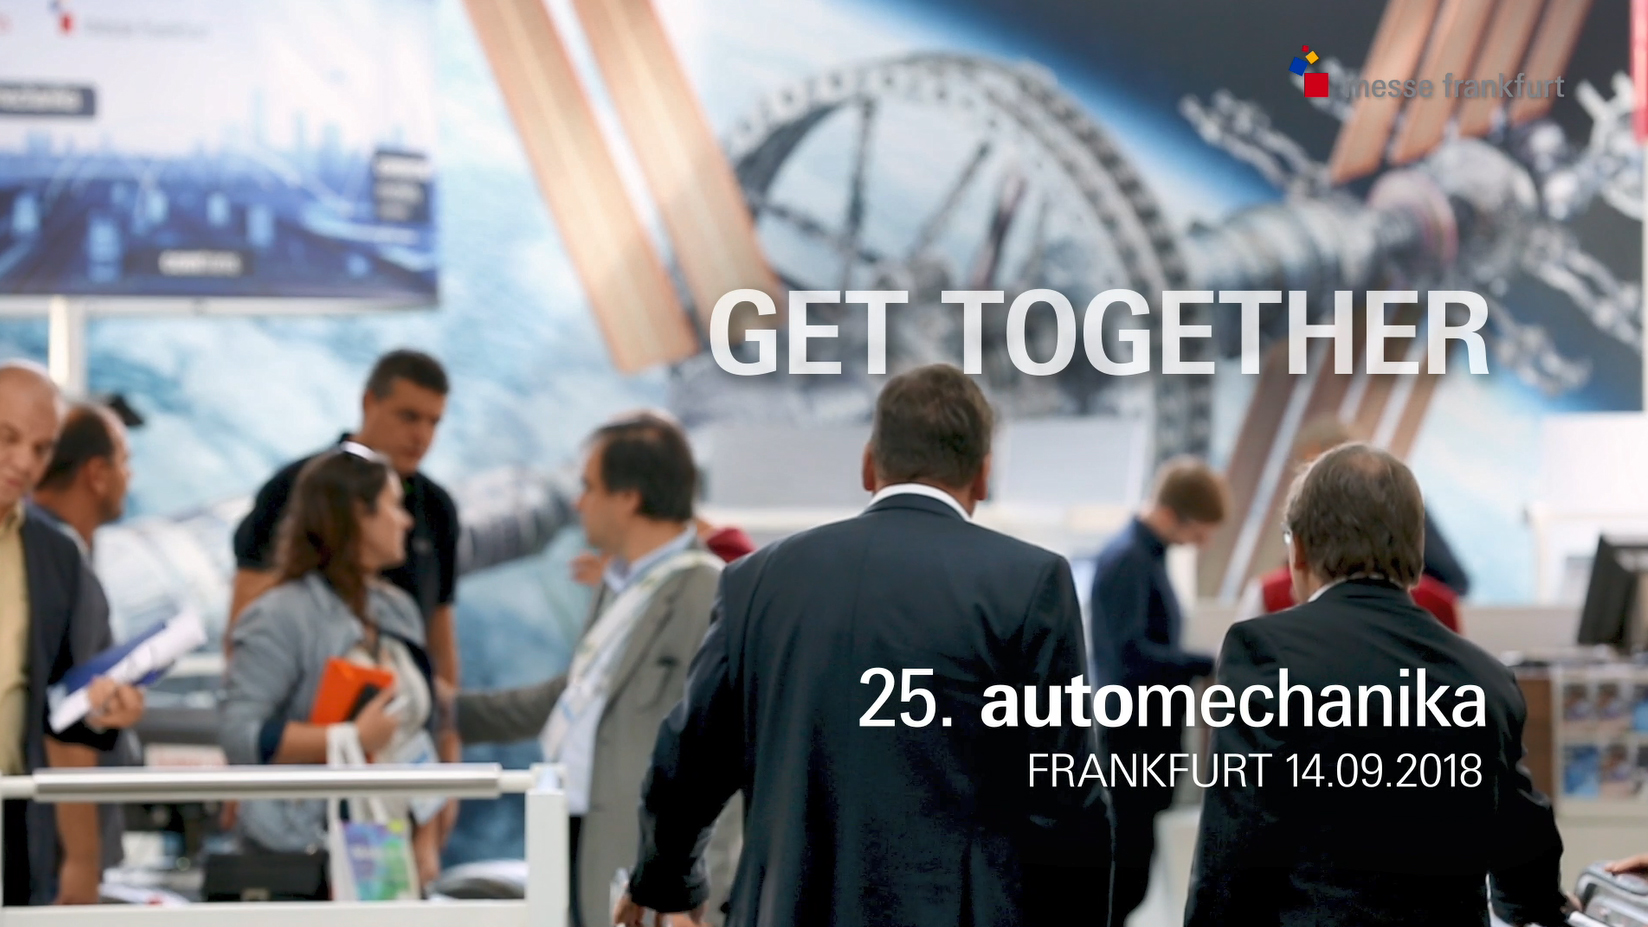 Get together Automechanika